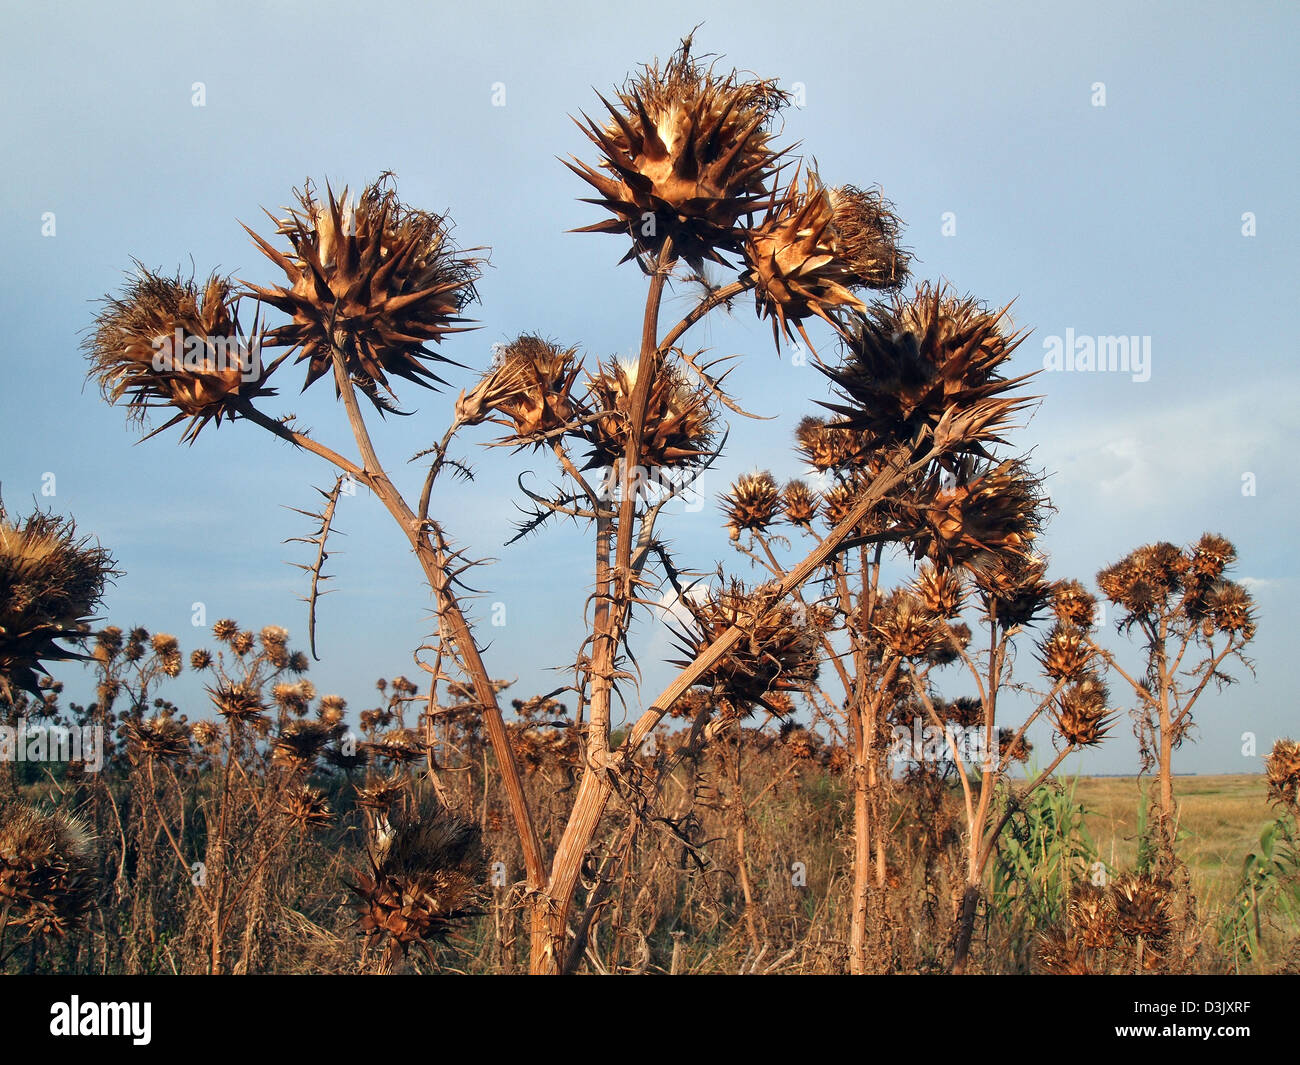 dry thistles in Tuscany, Italy - Stock Image